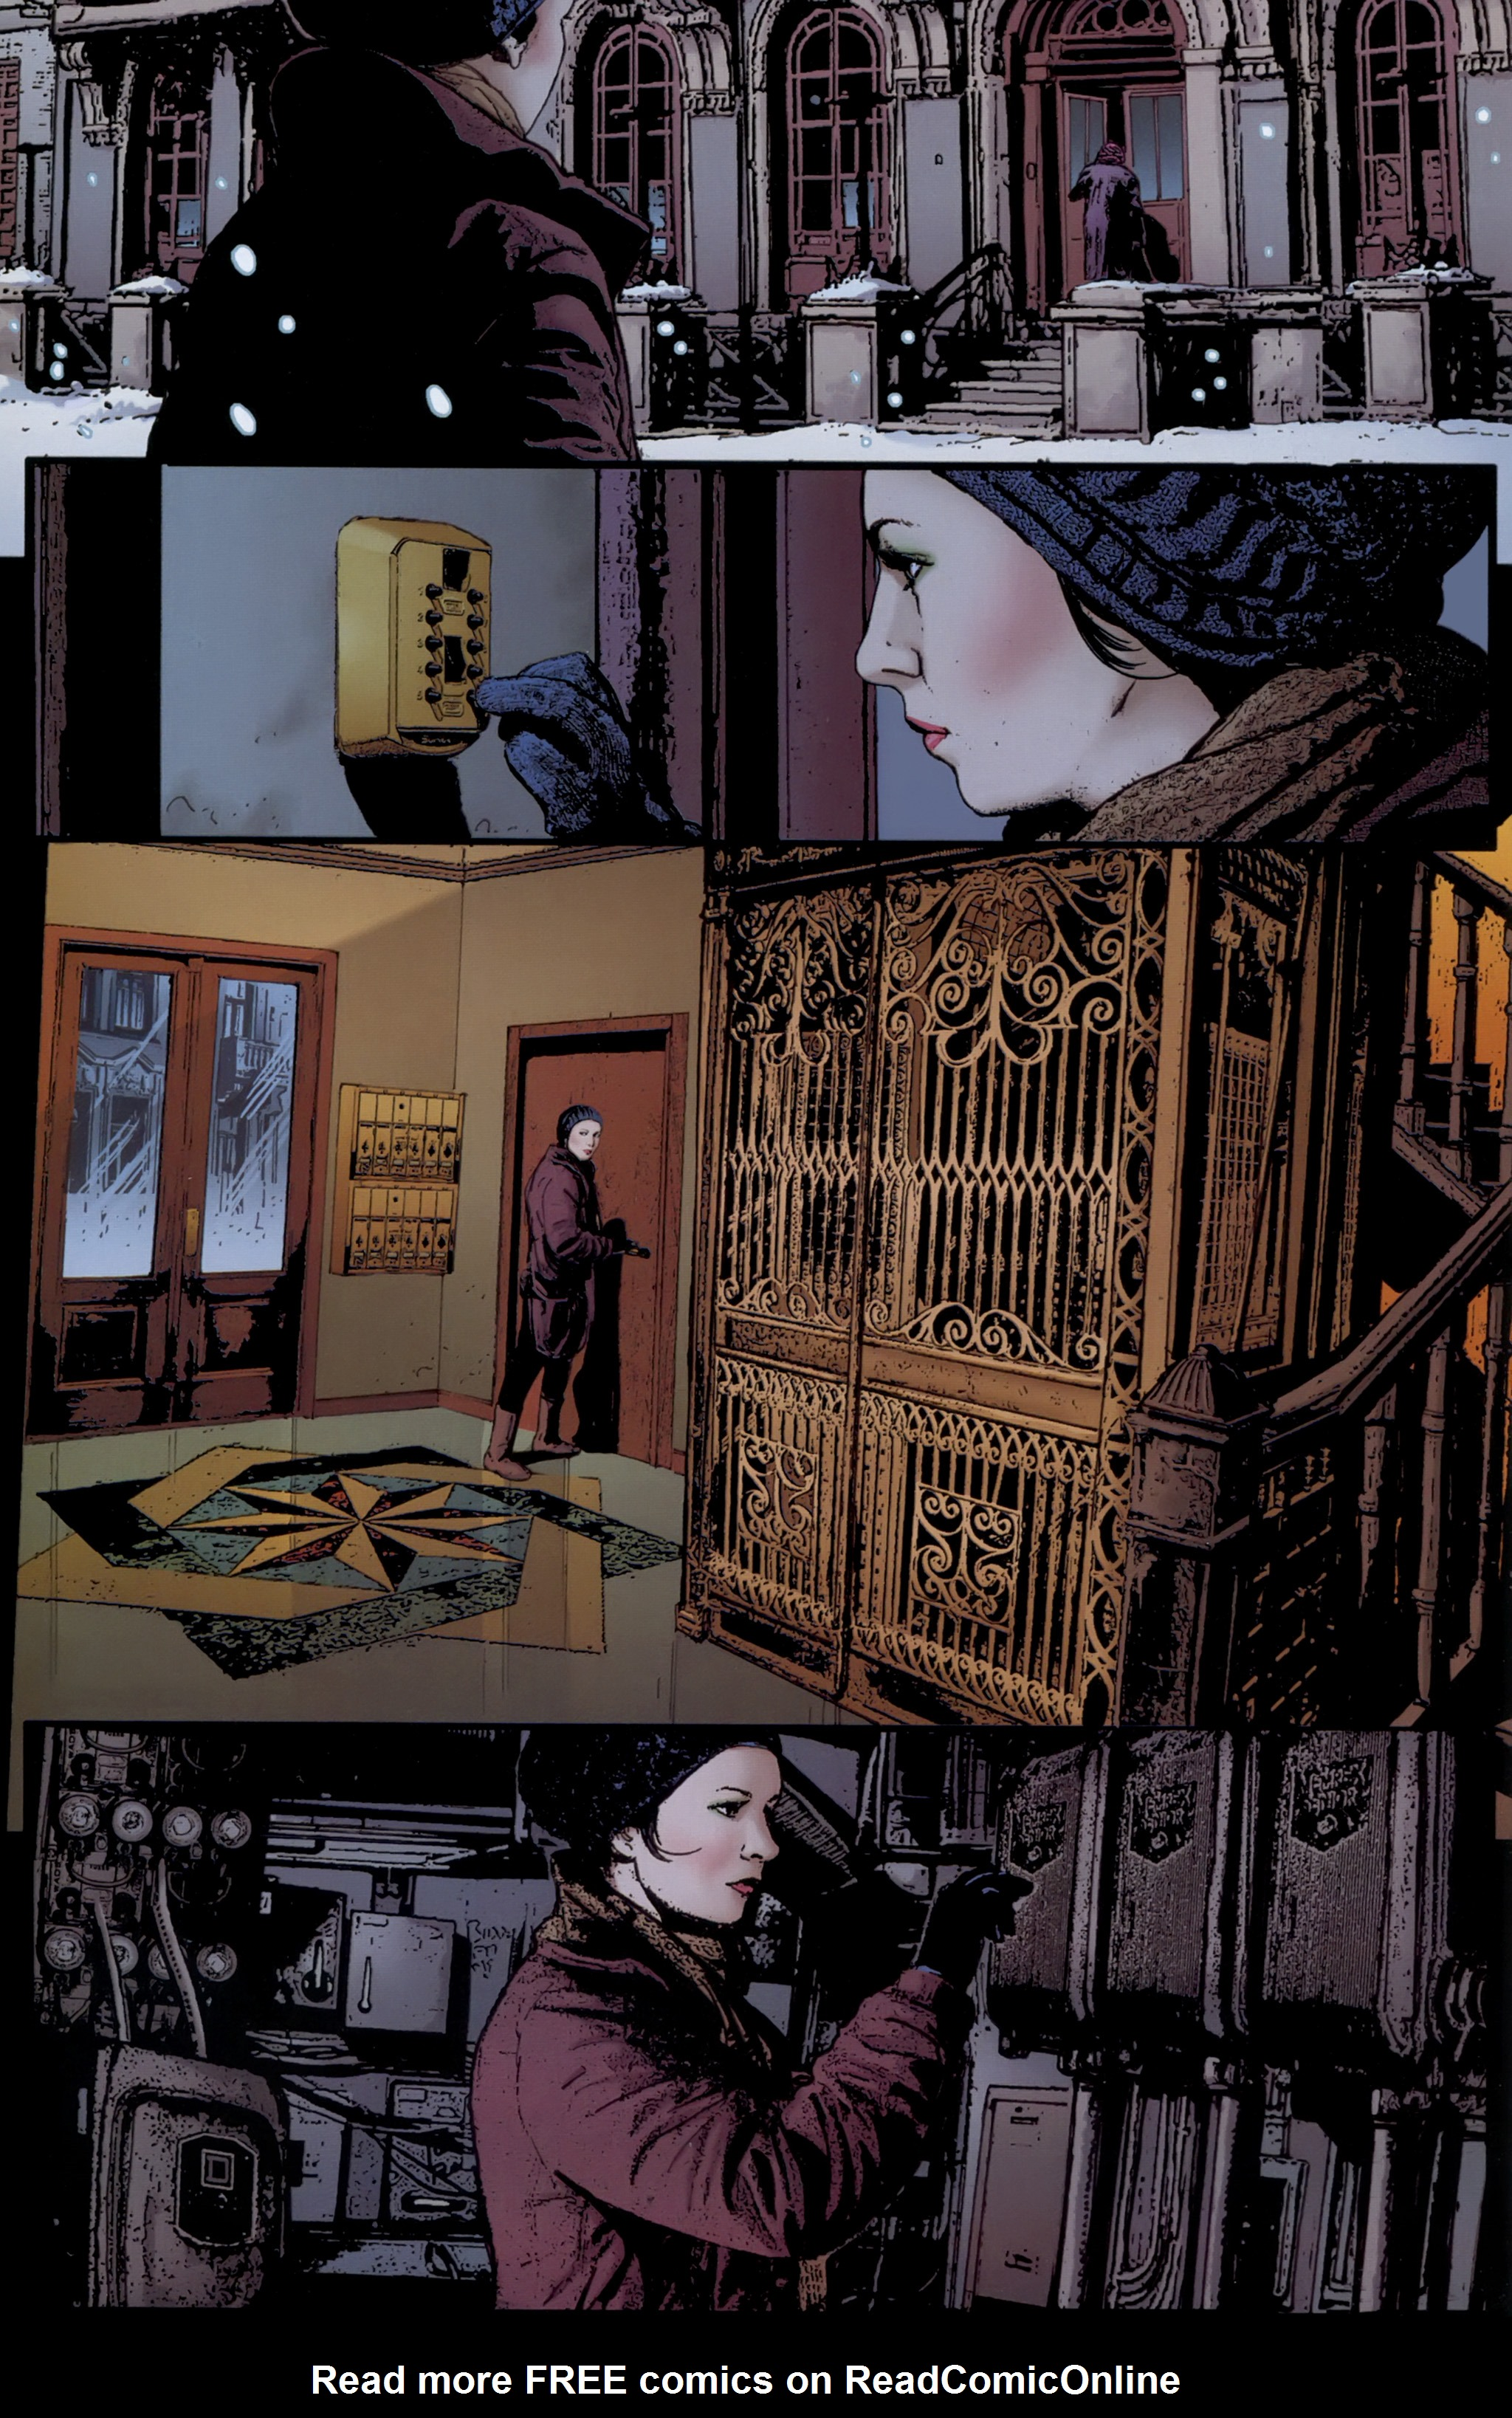 Read online The Girl With the Dragon Tattoo comic -  Issue # TPB 1 - 45